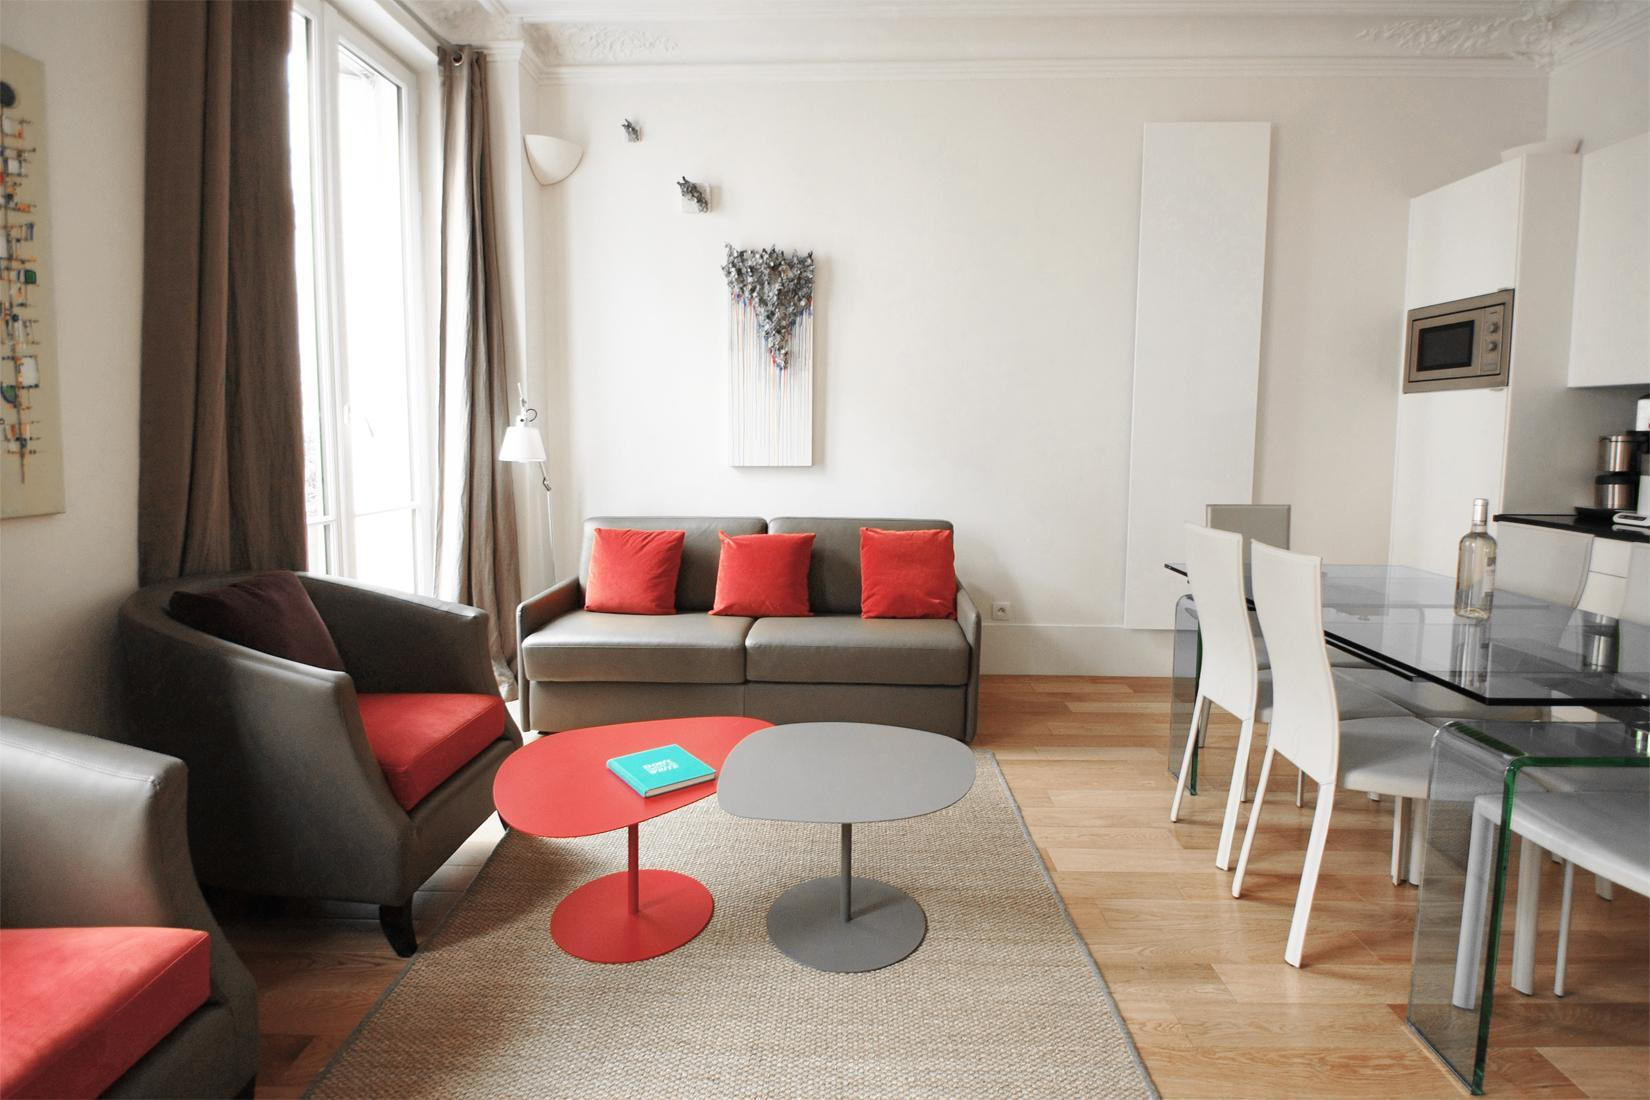 202200 - A Beautiful and spacious 2-bedroom apartment in Réaumur  Sebastopol